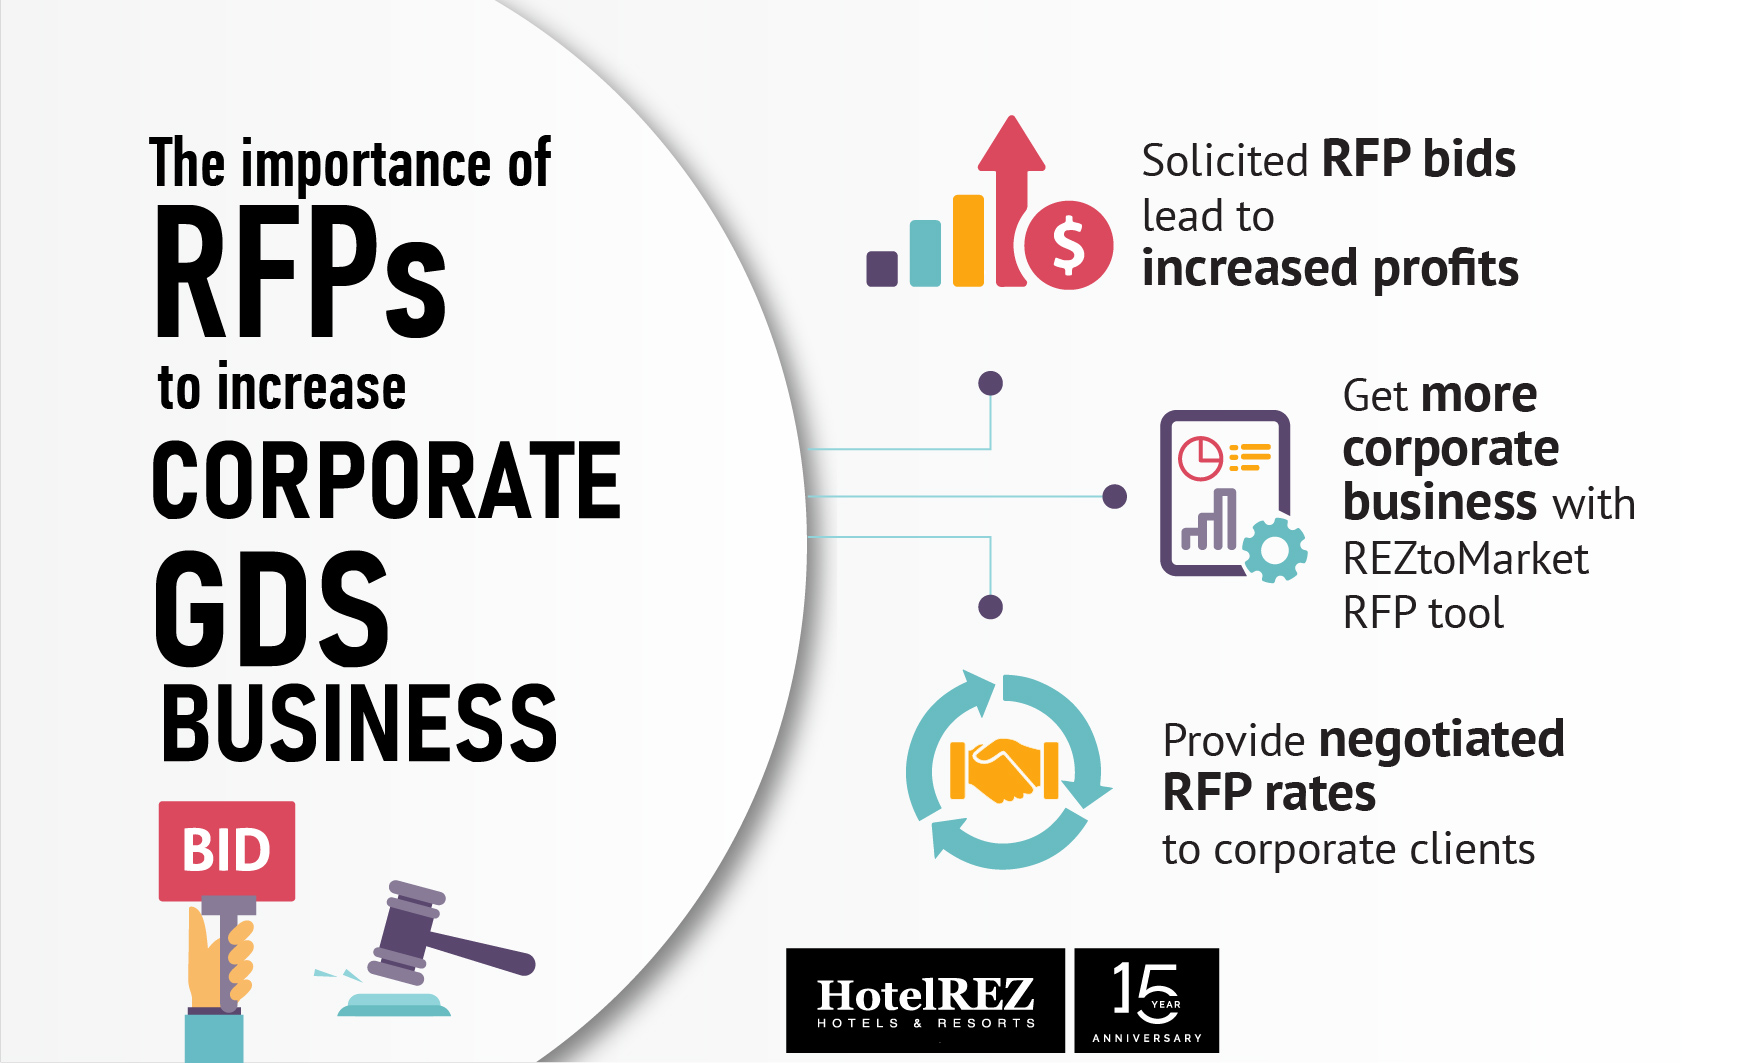 Corporate RFPs are important for hotels